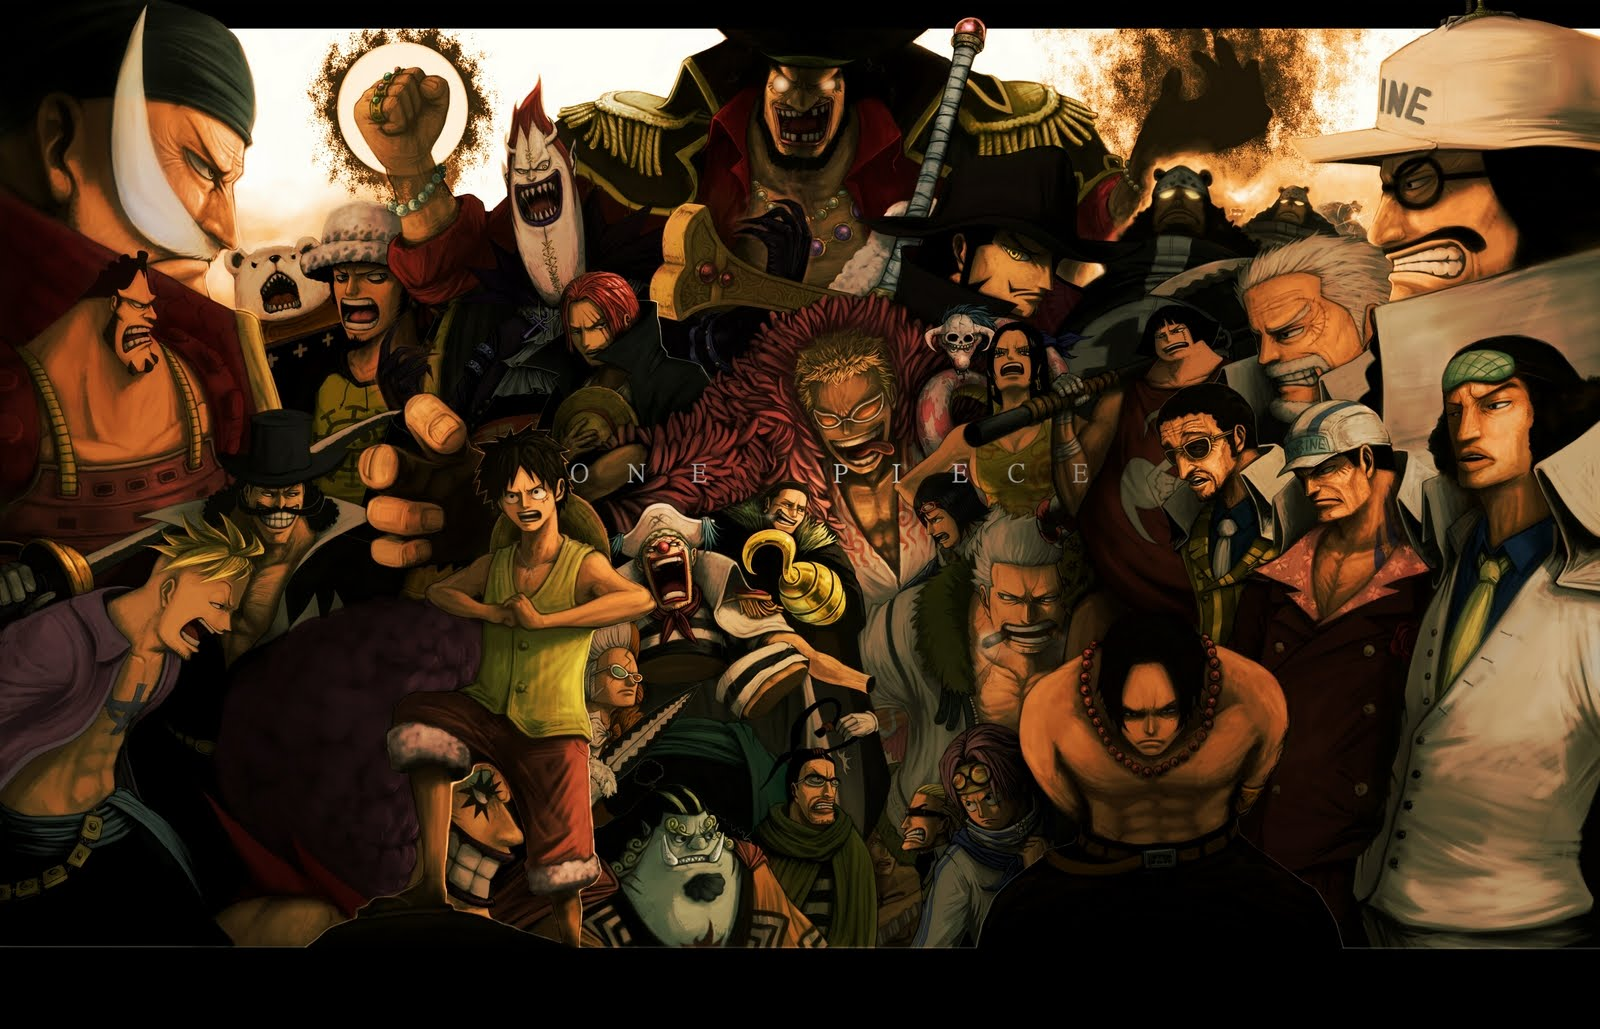 One Piece HD & Widescreen Wallpaper 0.0637832197620556